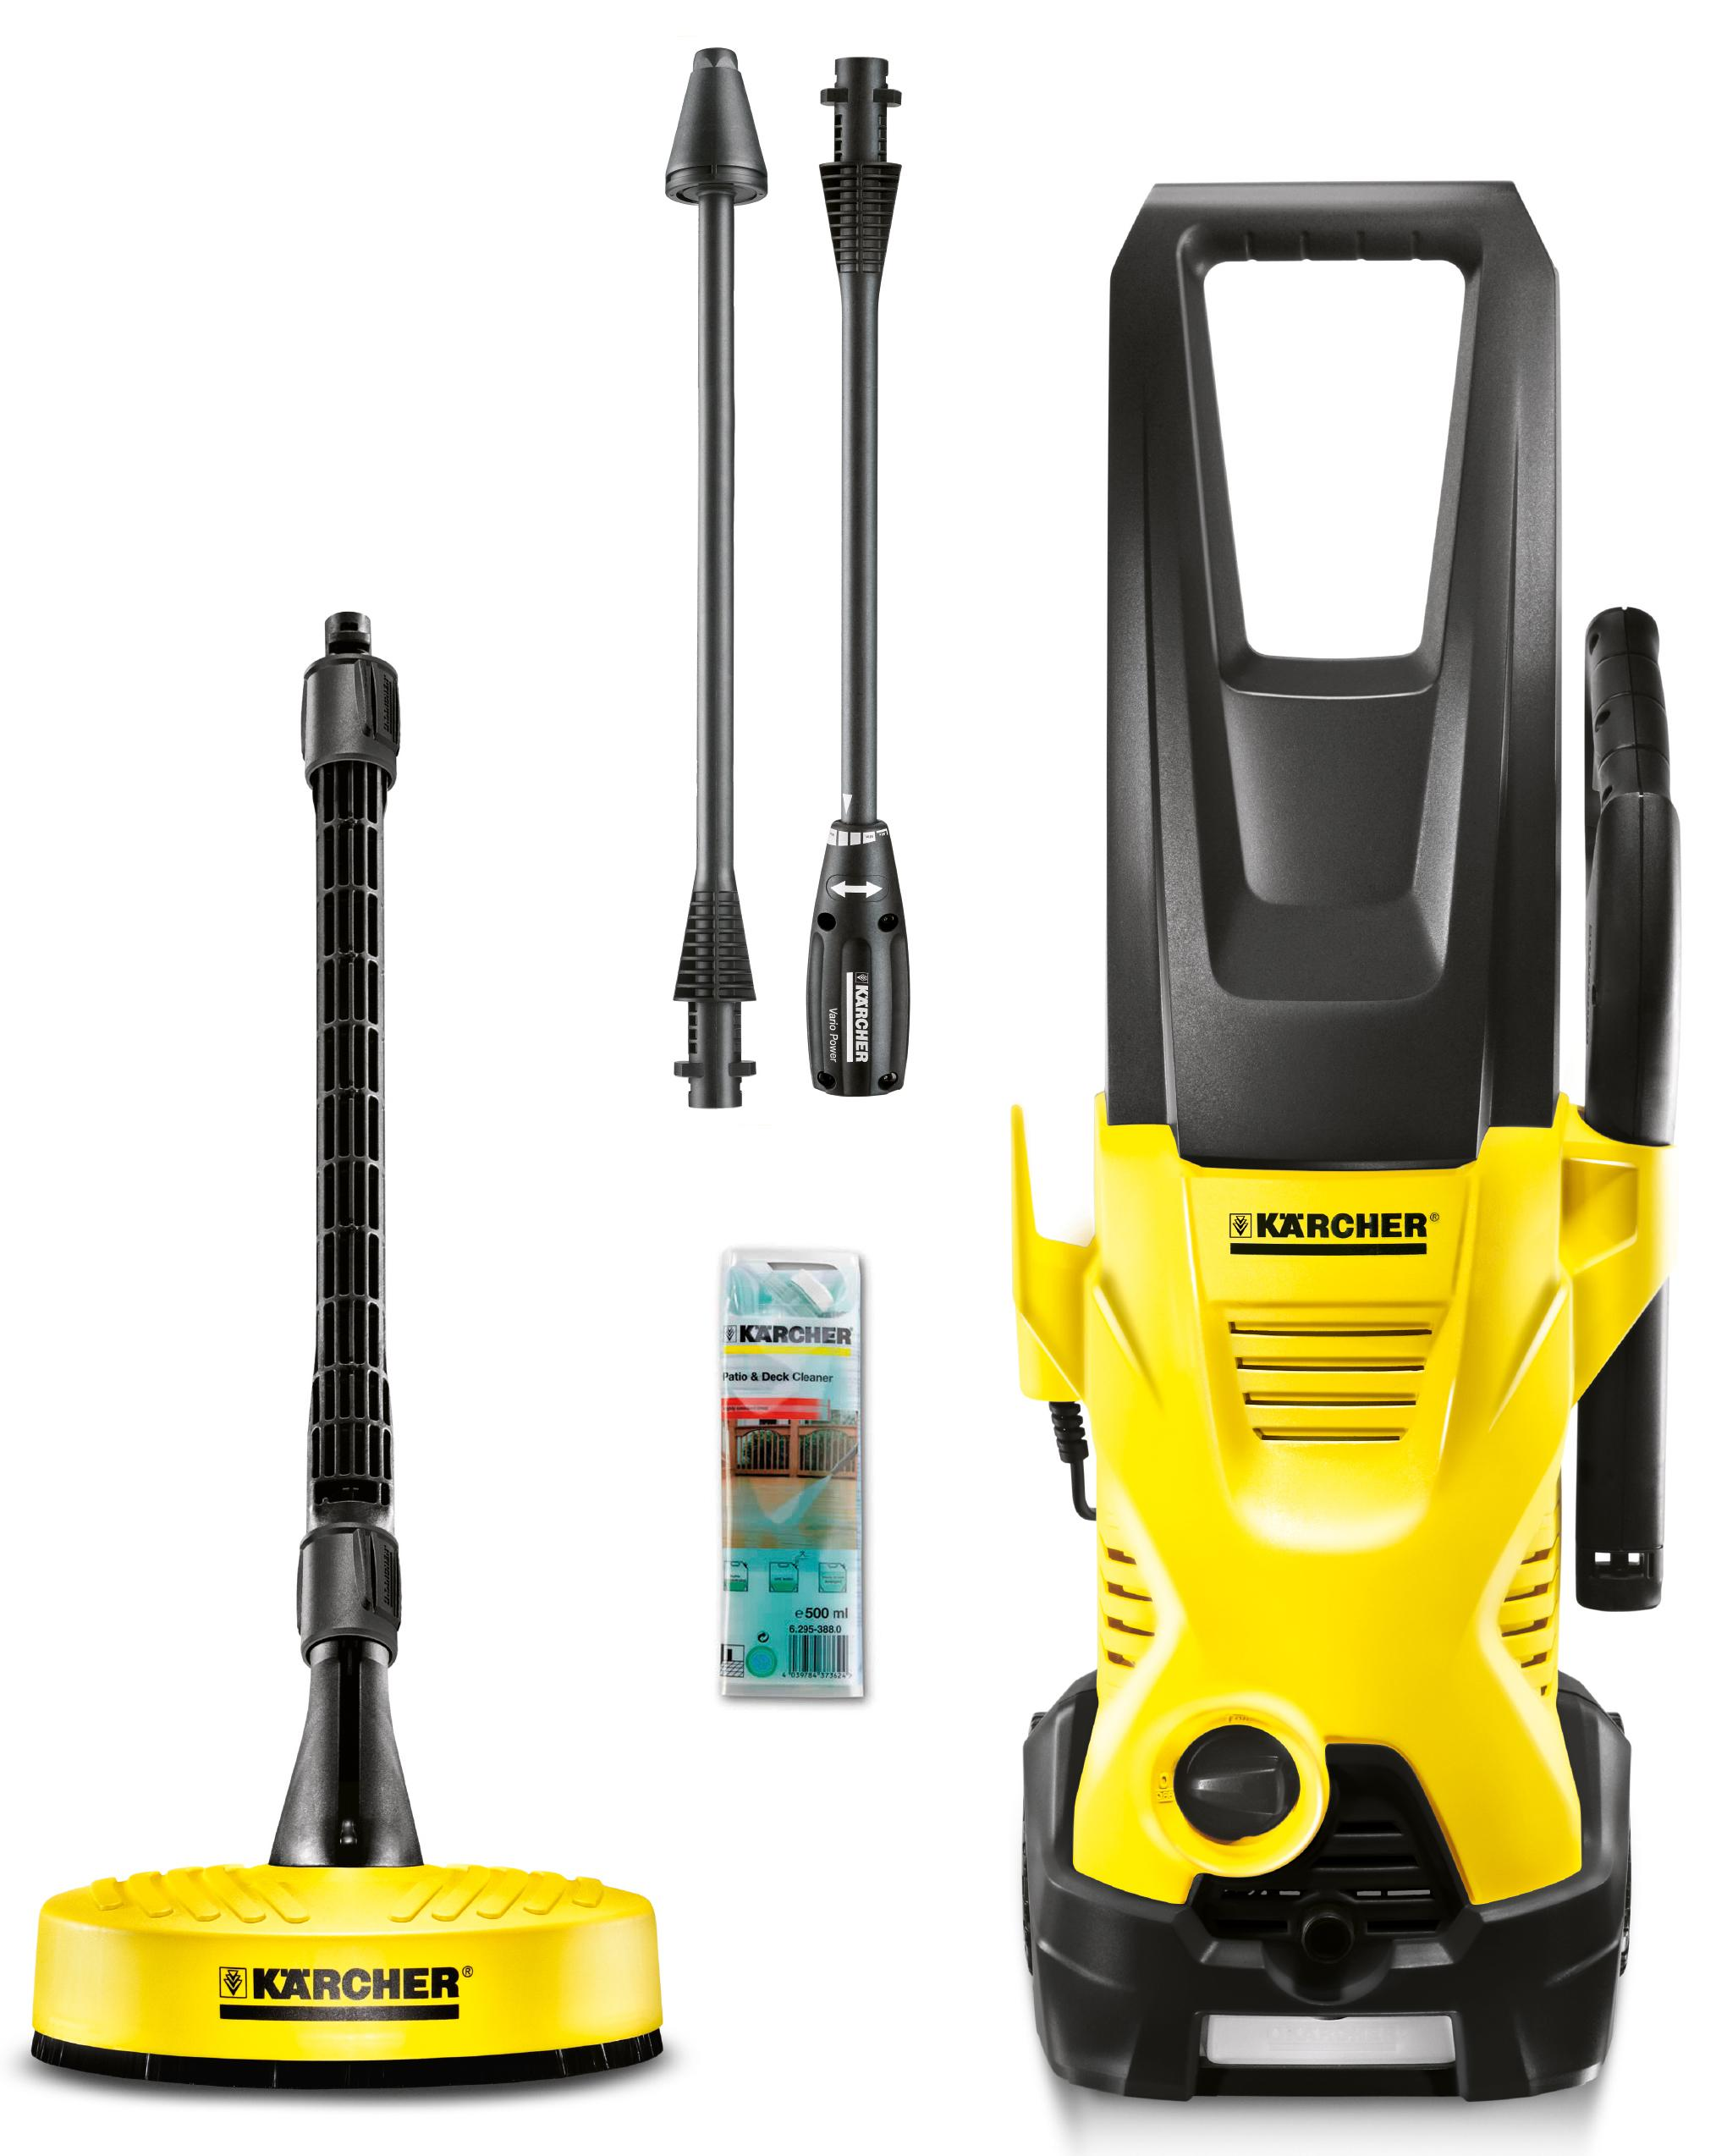 karcher karcher k5 premium domestic pressure washer less than. Black Bedroom Furniture Sets. Home Design Ideas